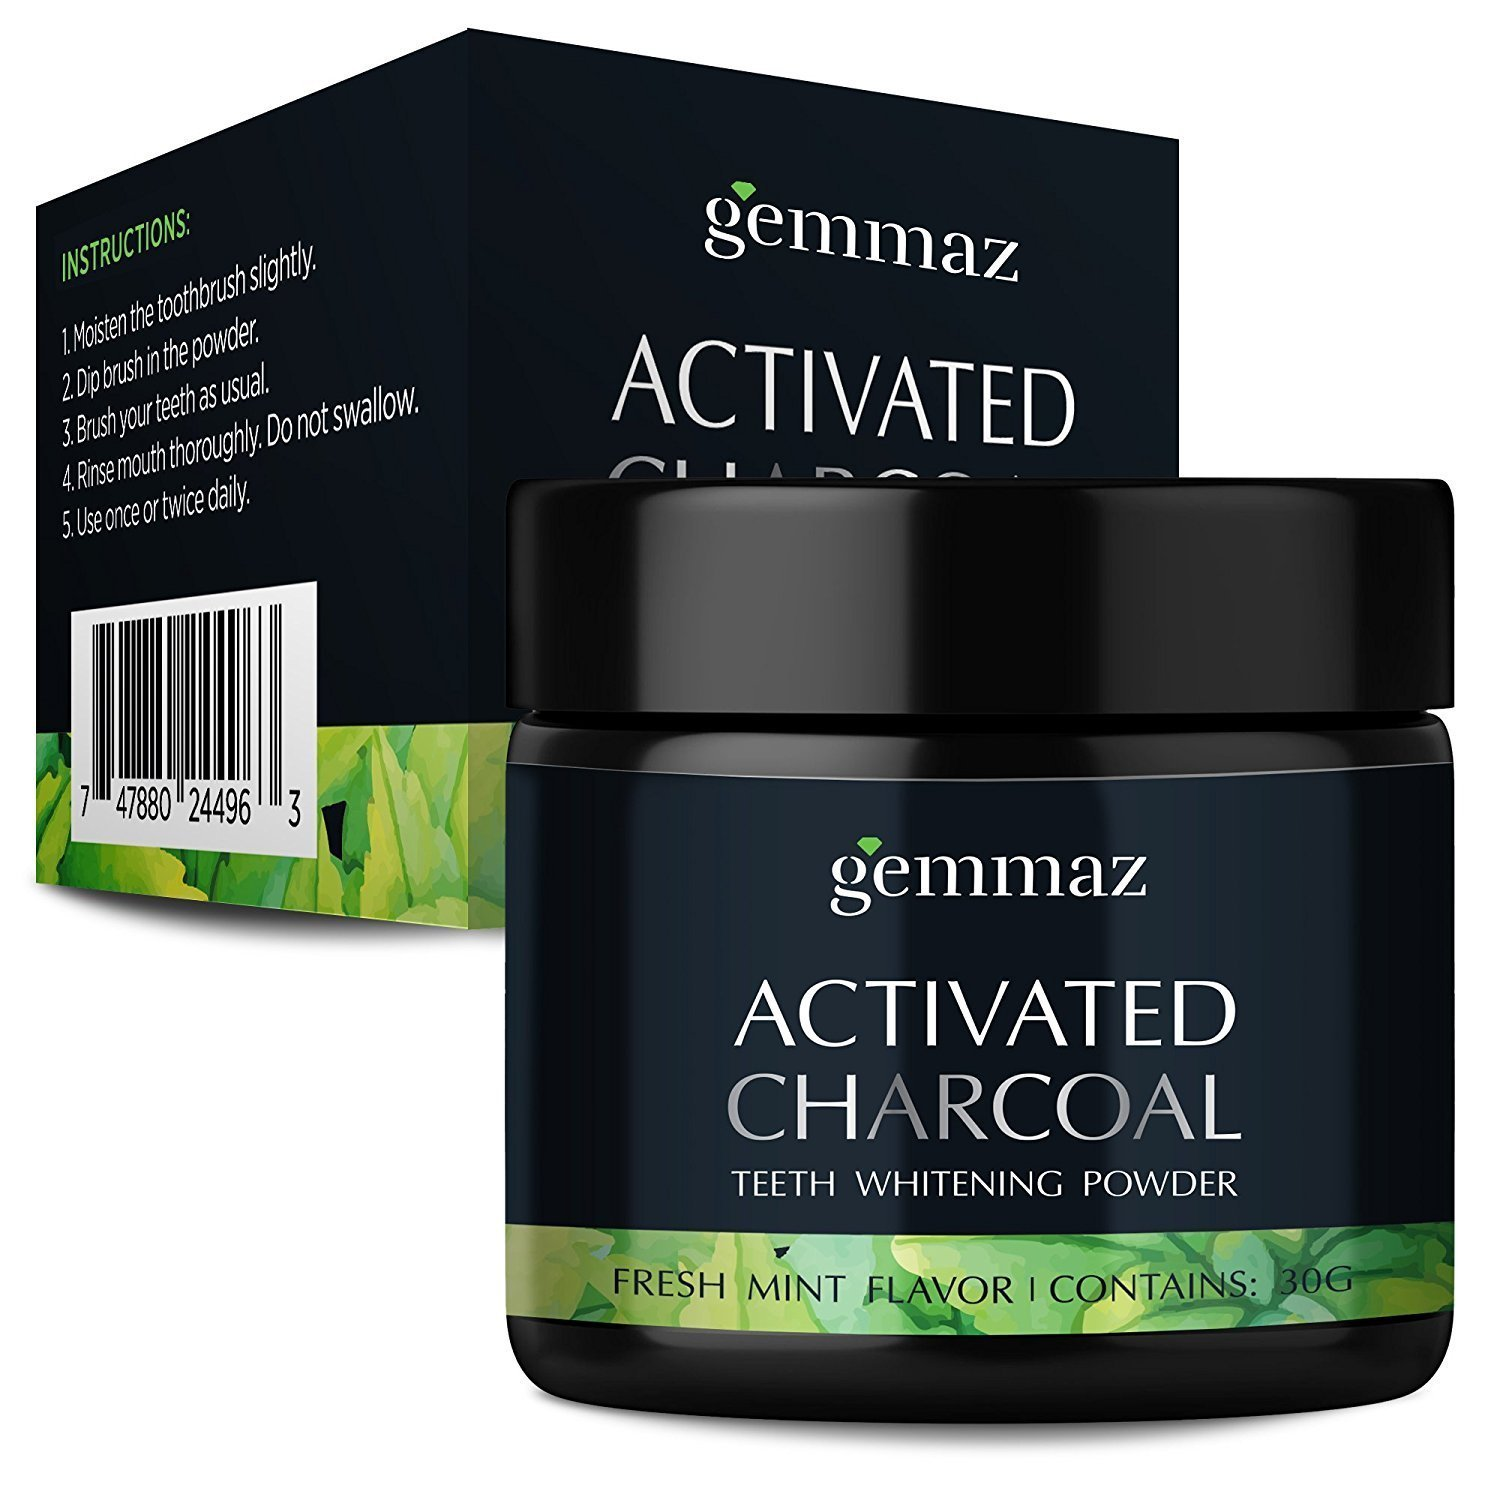 Natural Teeth Whitening Powder - Made in USA with Coconut Activated Charcoal and Food Grade Formula - Candy Cane Mint Flavor (30g)